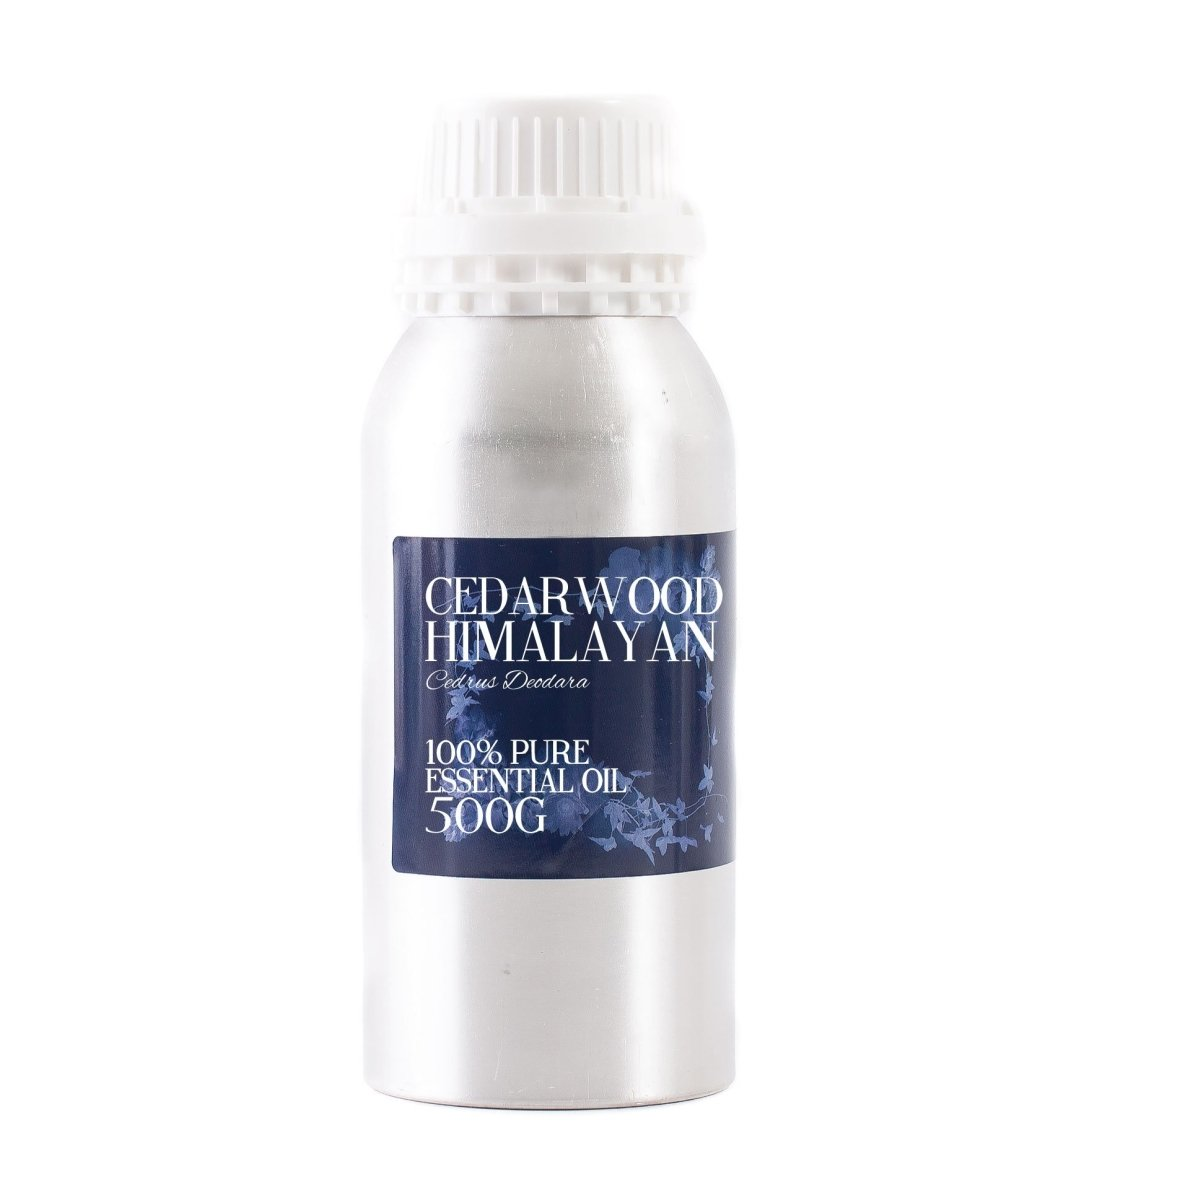 Cedarwood Himalayan Essential Oil - Mystic Moments UK